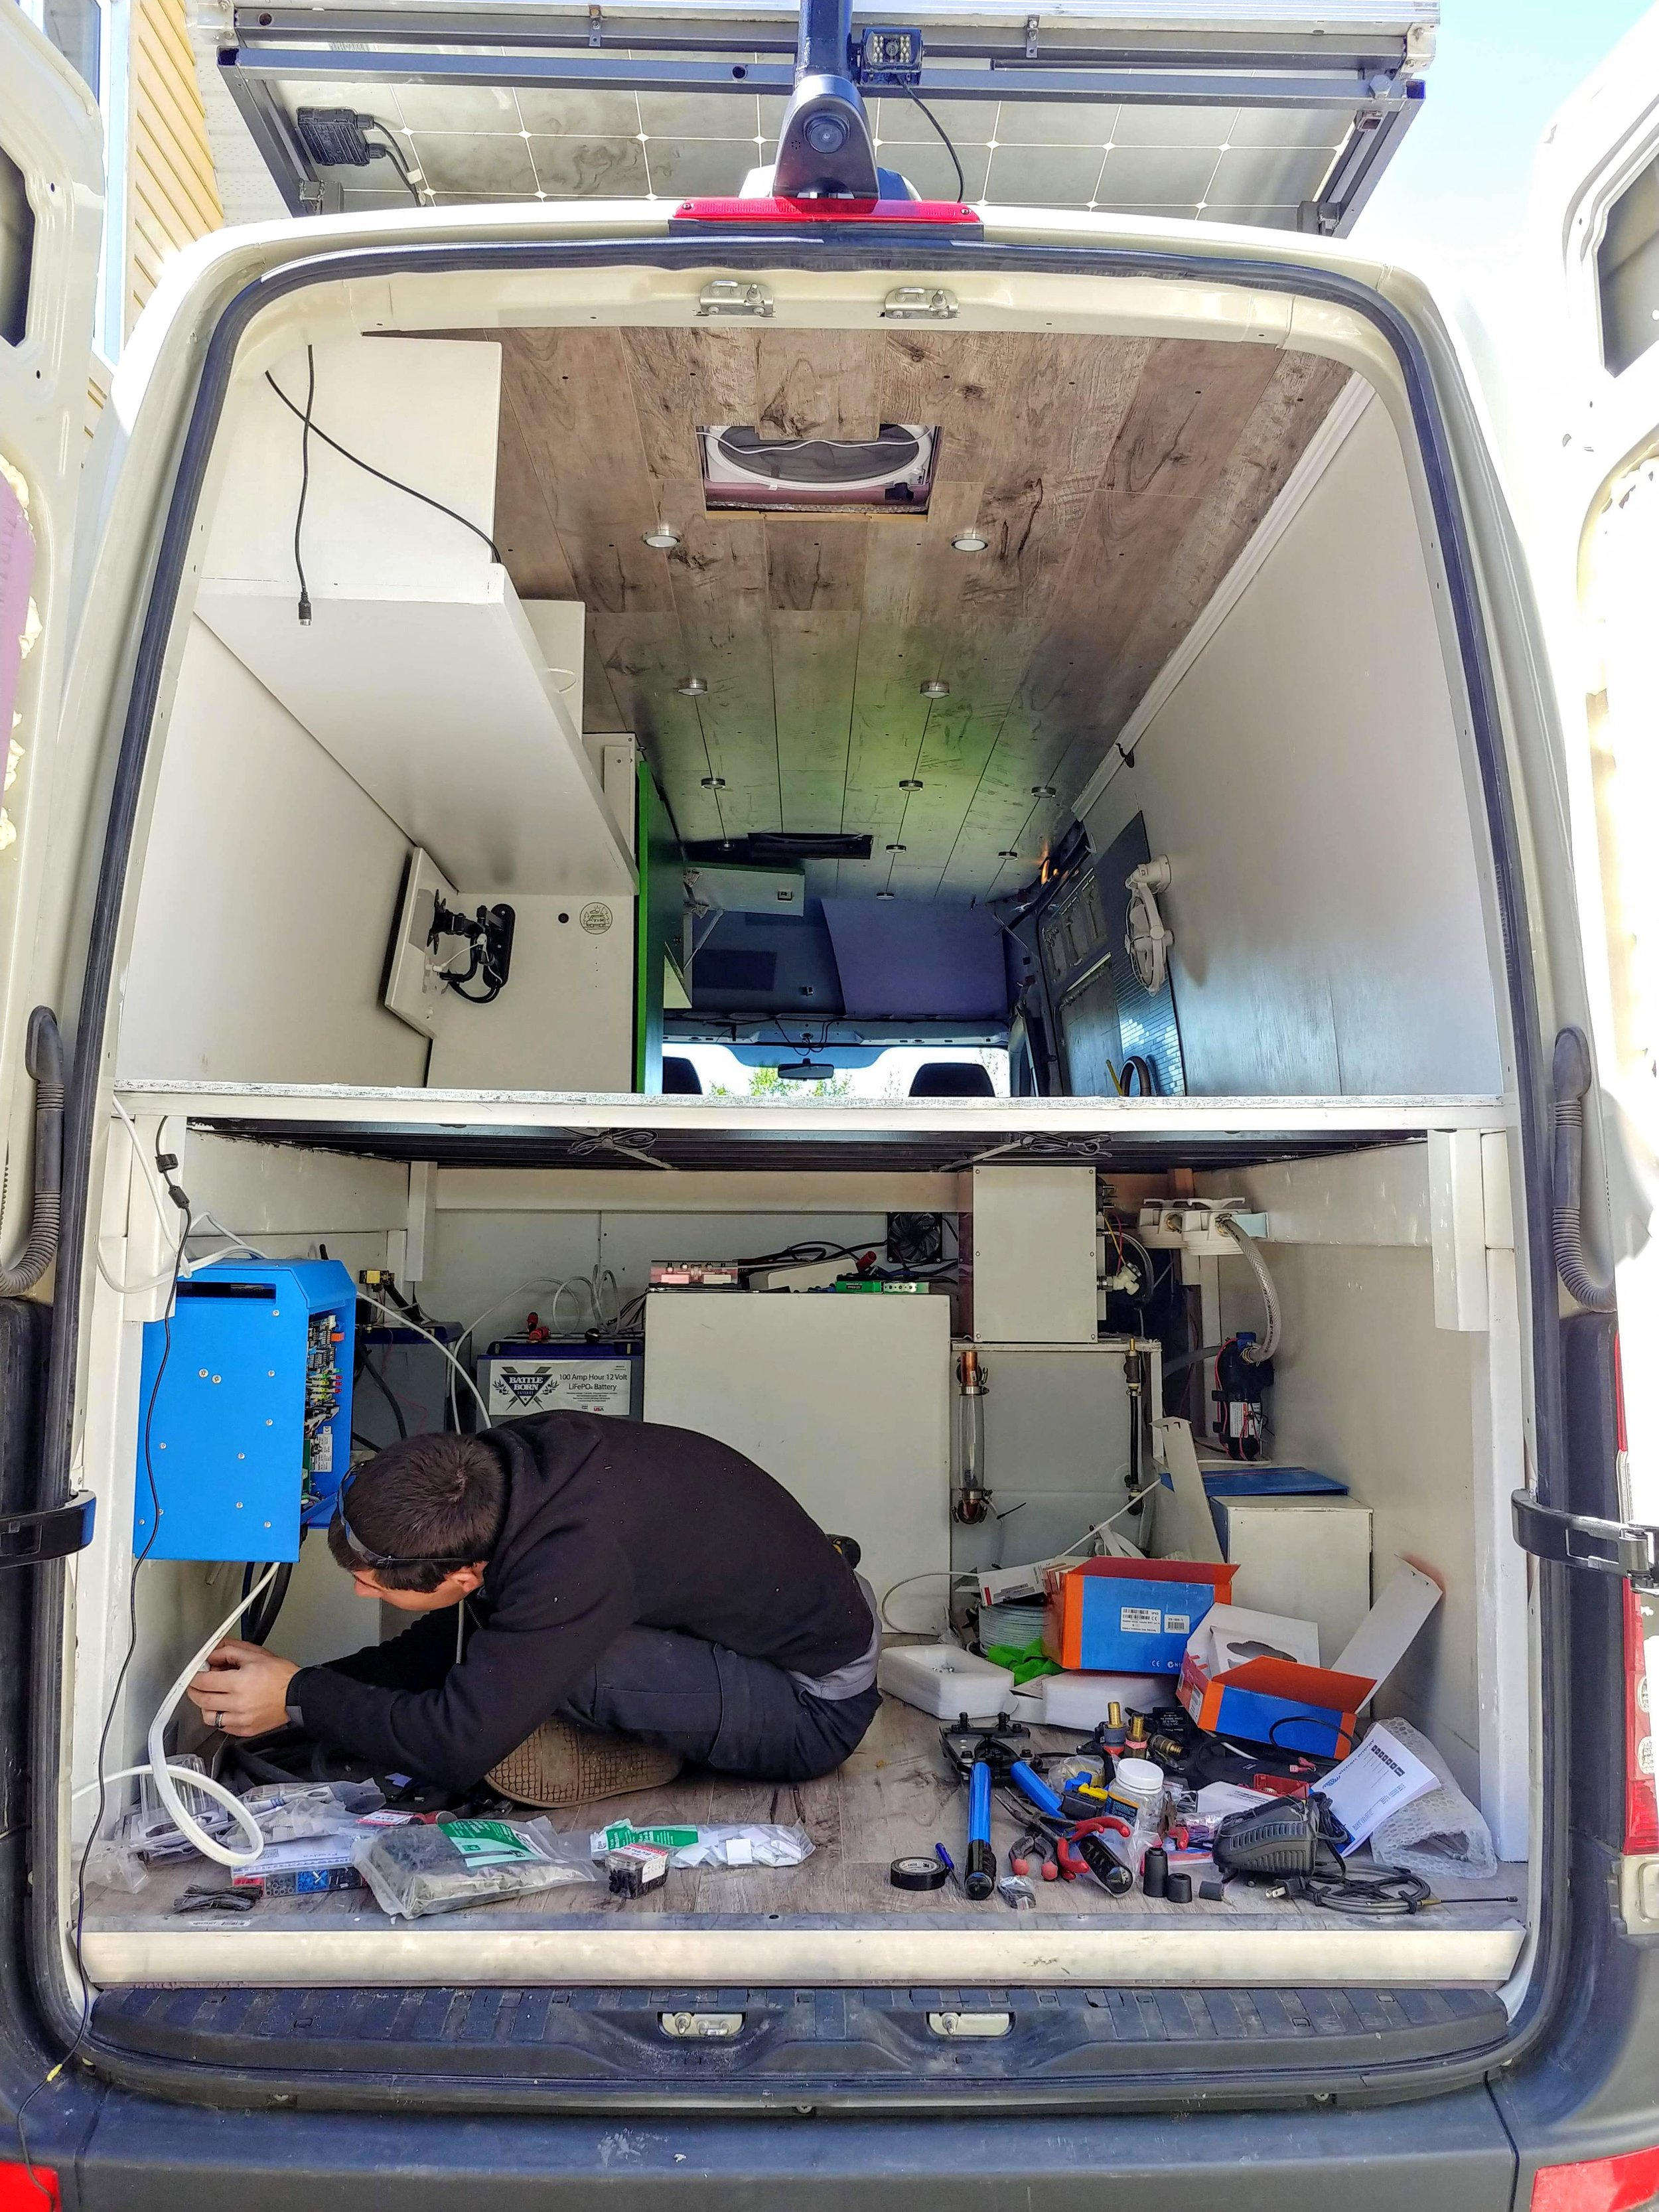 Re-assembling the van after body repairs and completing upgrades - June 2019